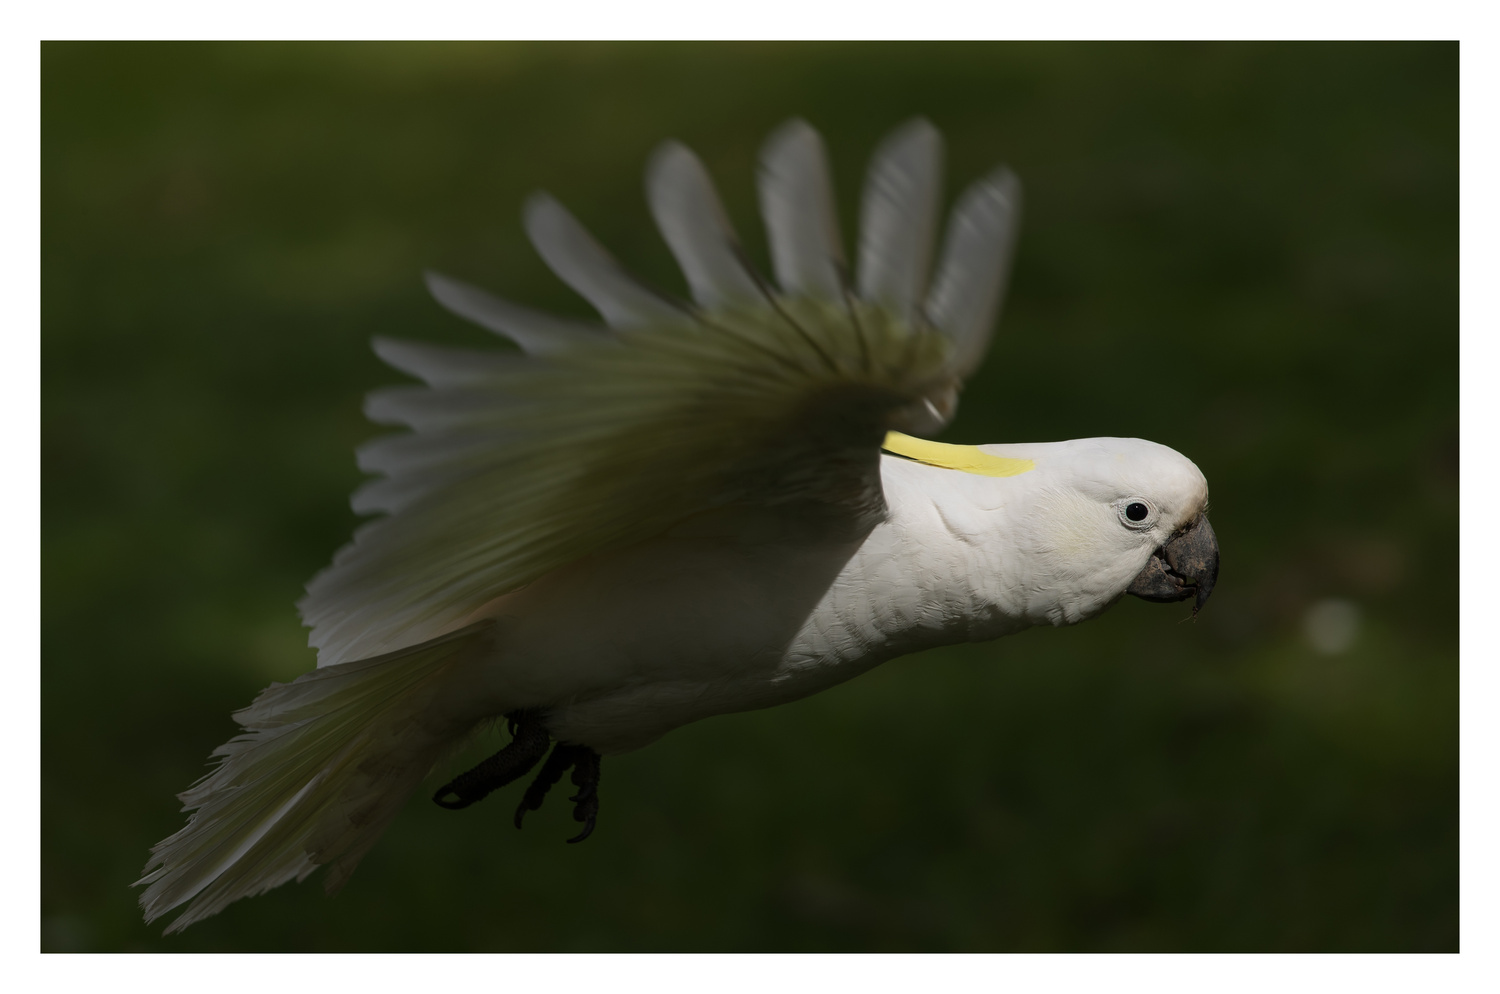 Sulphur crested cockatoo by Peter Virag